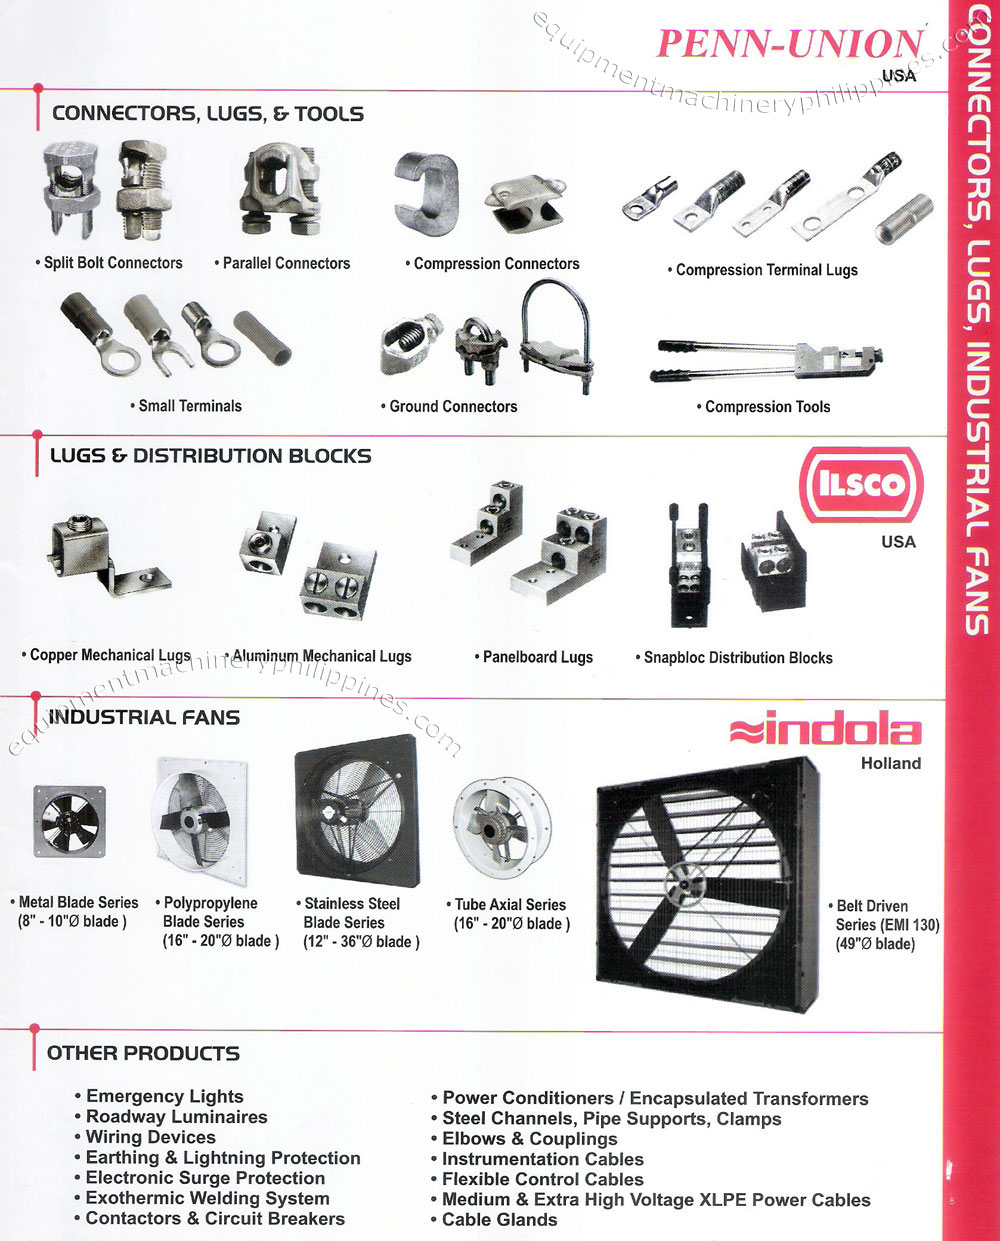 Wiring Devices Supplier Philippines Solutions Leviton Penn Union Connectors Lugs Tools Ilsco And Distribution